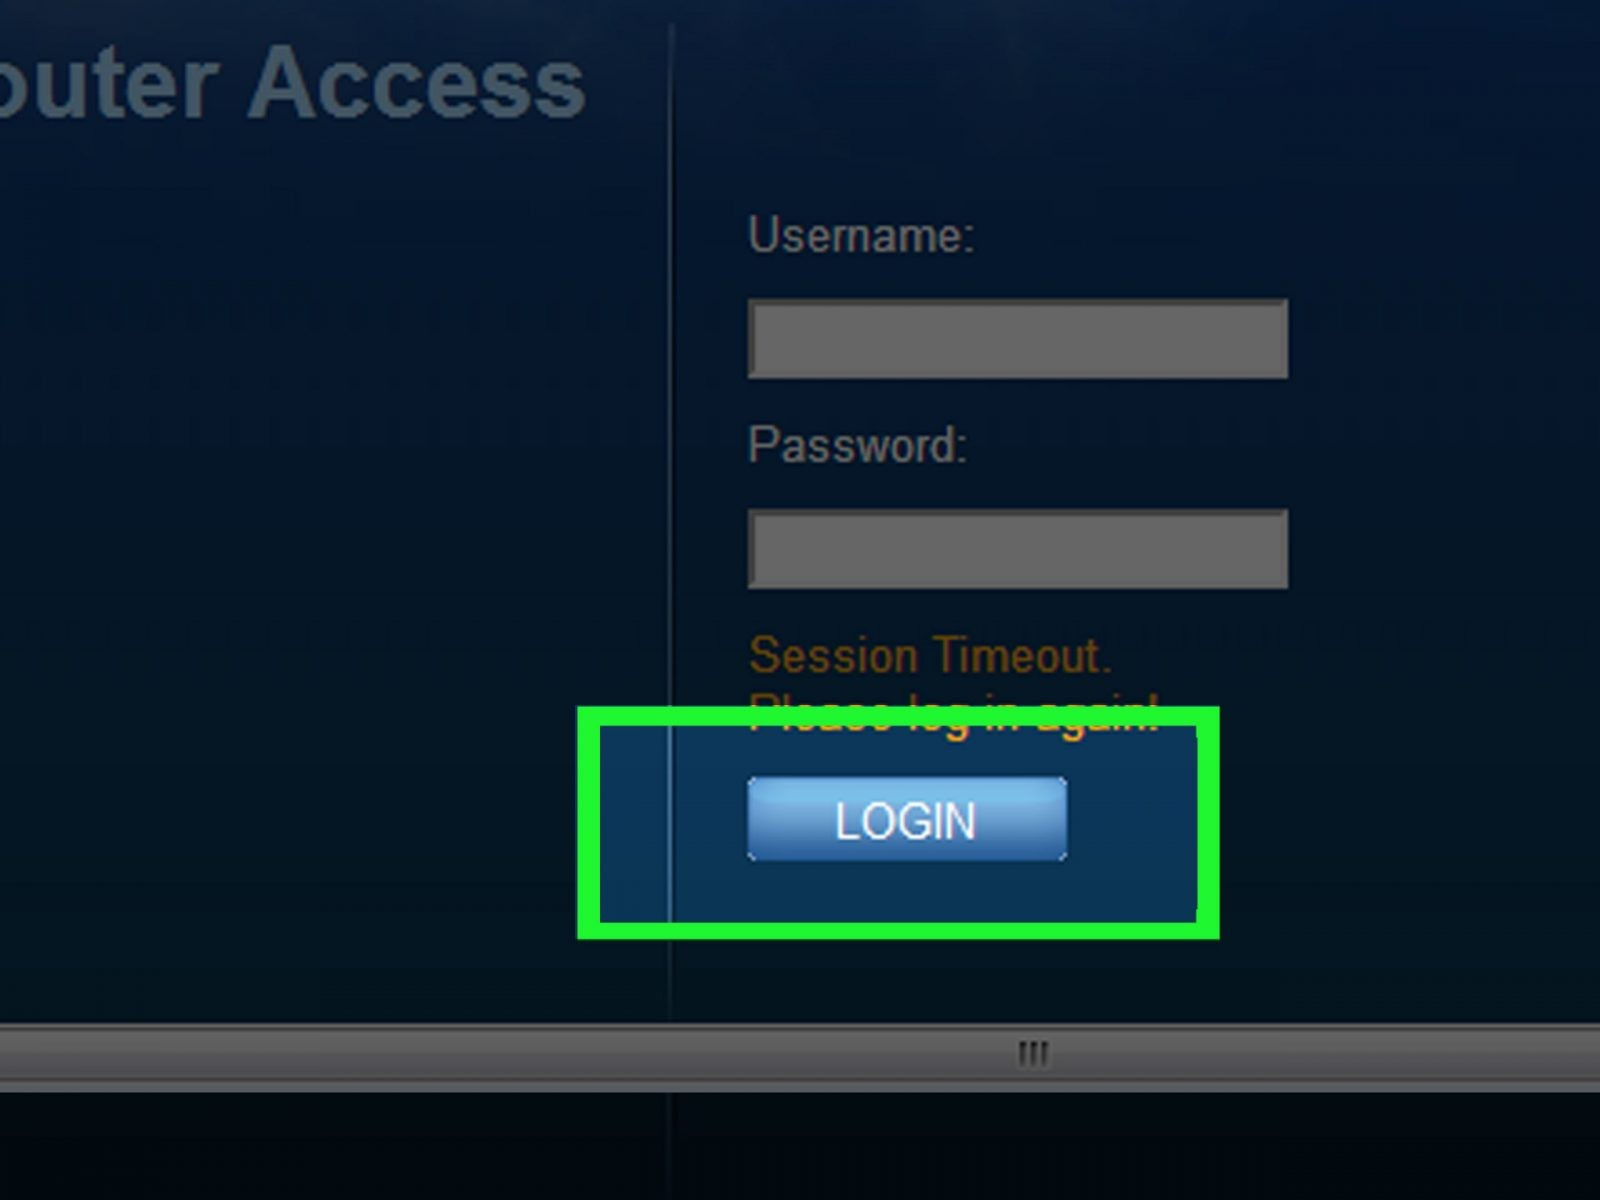 How to Login to Linksys Router